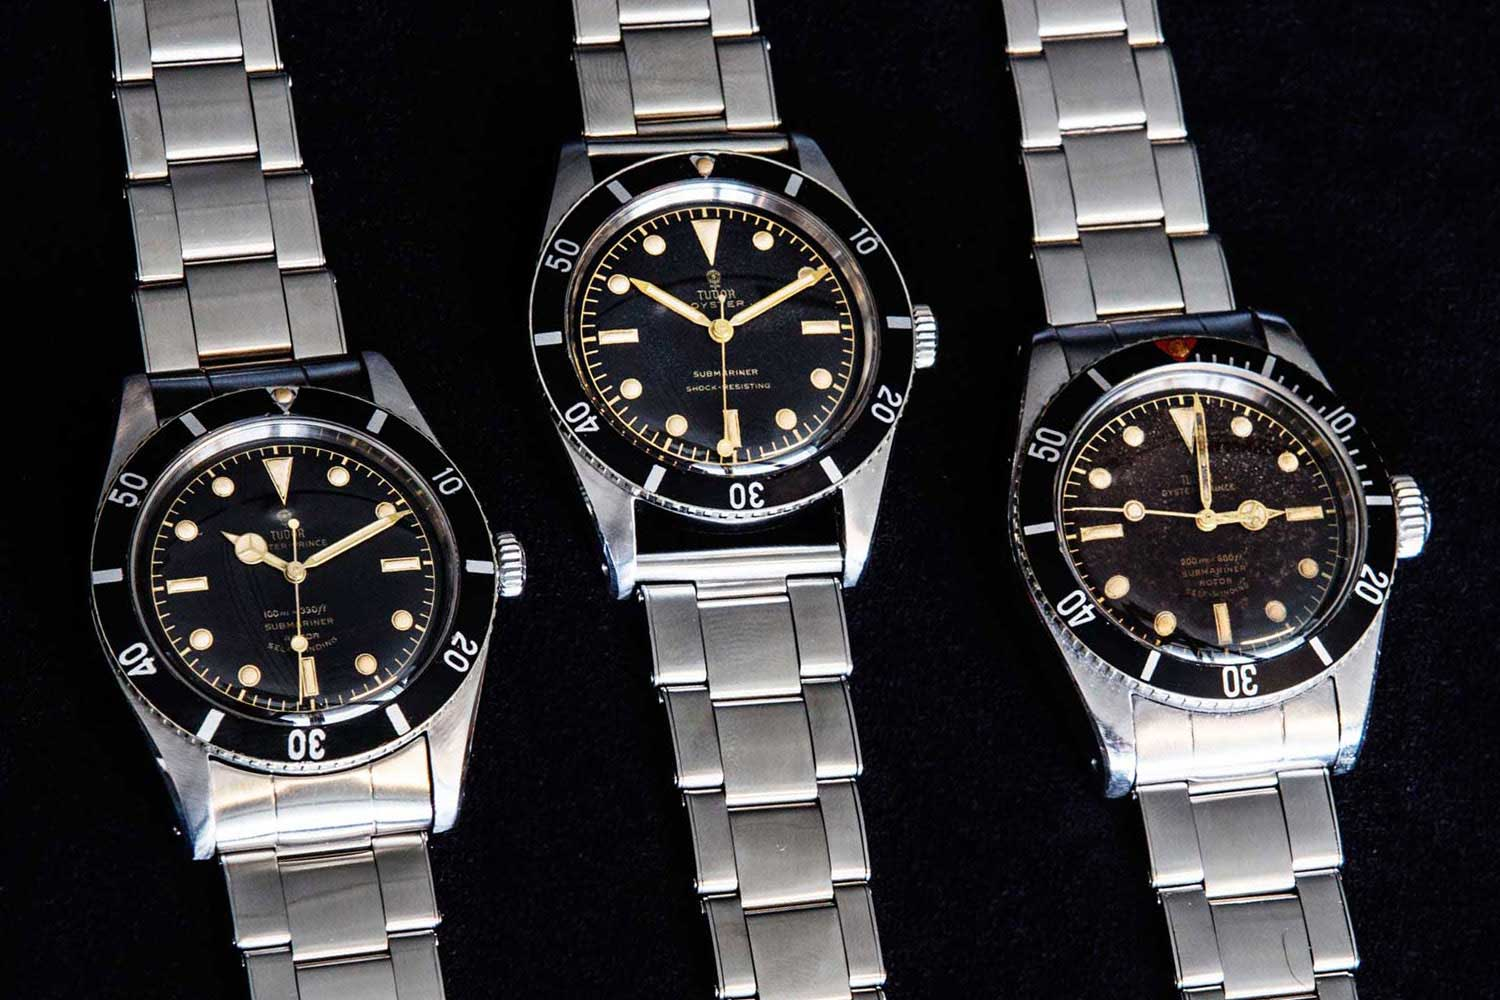 From left to right – Tudor Submariner 7922 (1954) – Tudor Submariner 7923 (1955) – Tudor Submariner 7924 (1958) (Image: monochrome-watches.com)